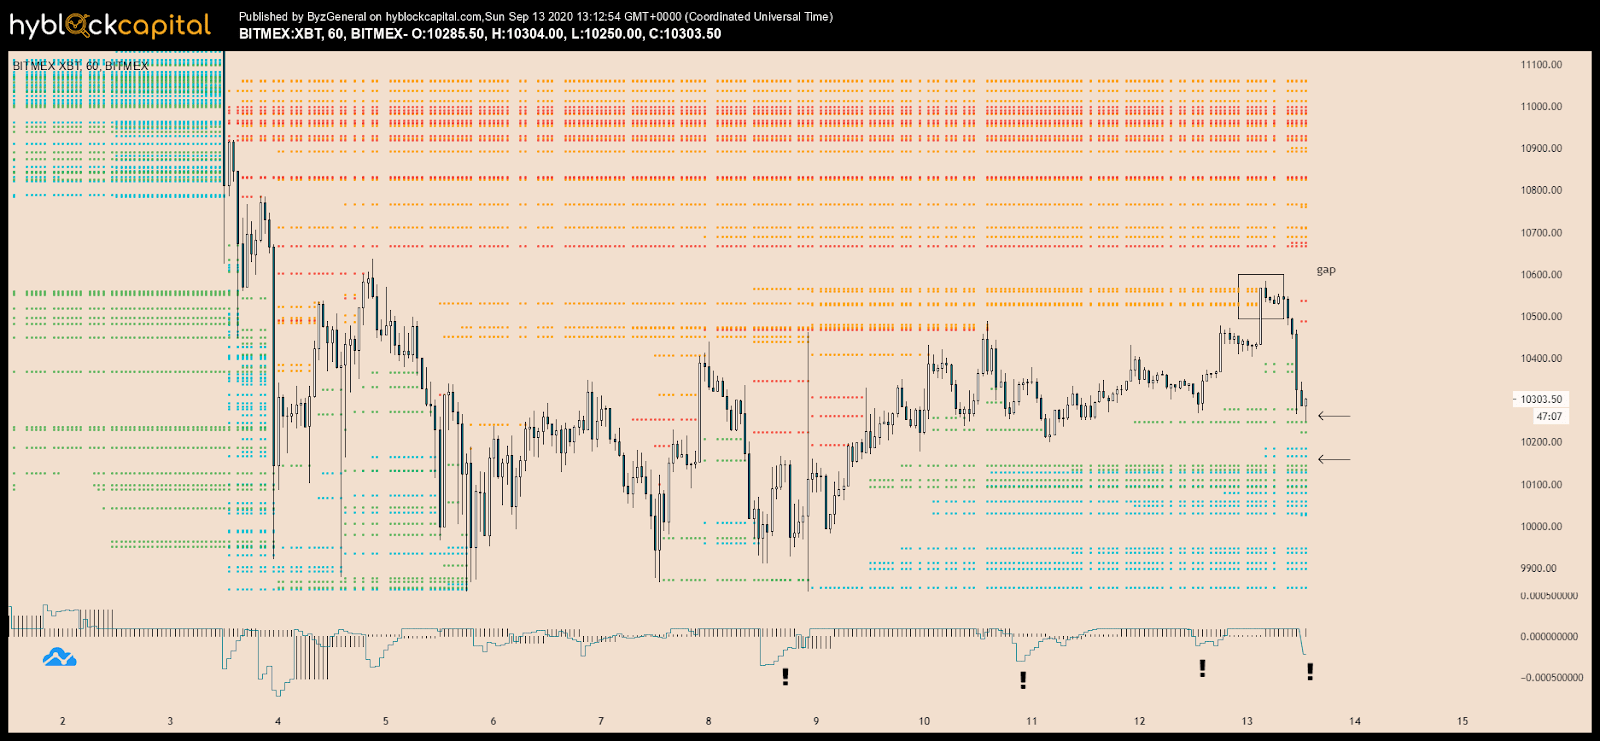 The price chart of BTC with liquidation levels